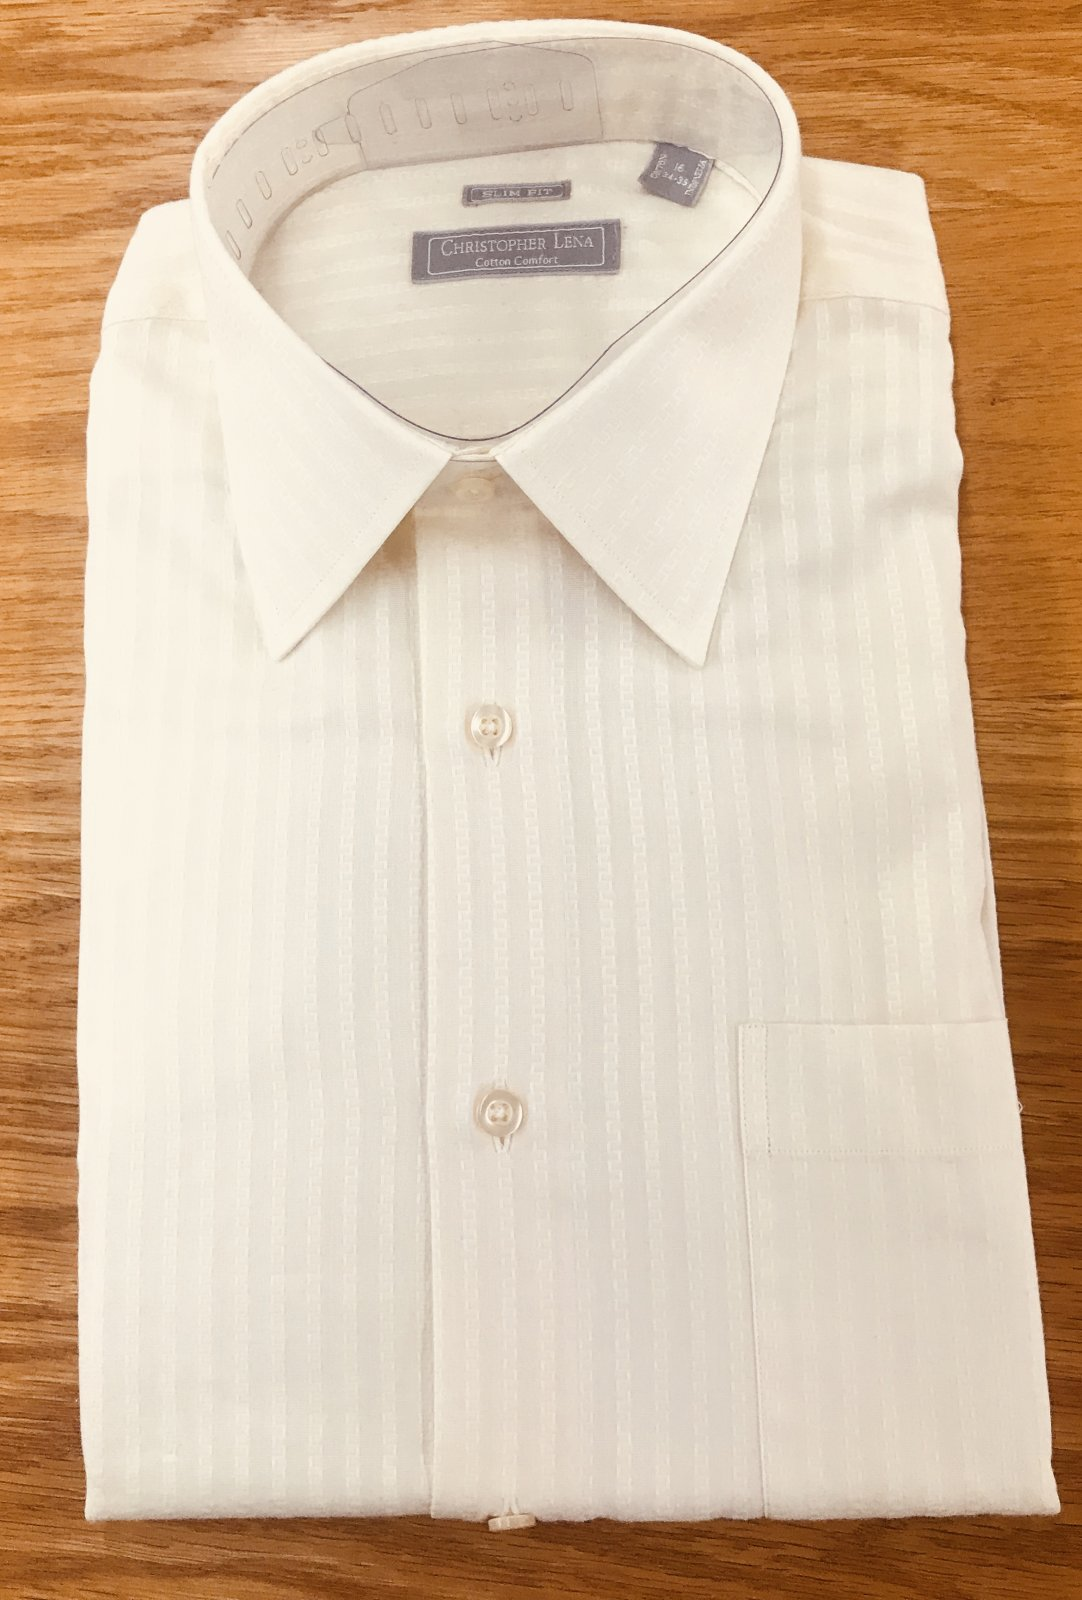 Christoper Lena Ecru Dress Shirt